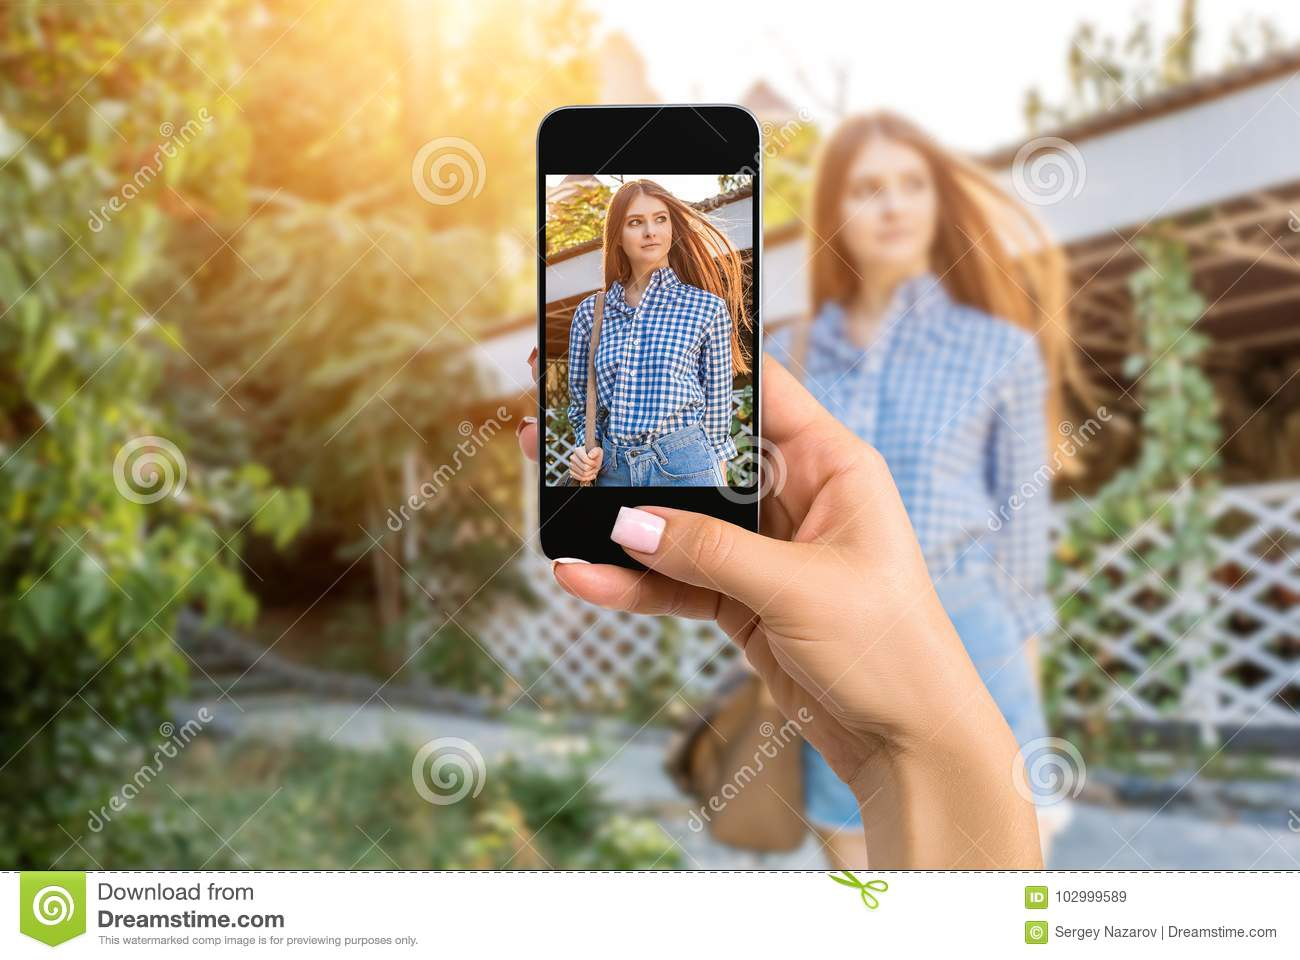 Closely image of female hands holding mobile phone with photo camera mode on the screen. Cropped image of portrait of a